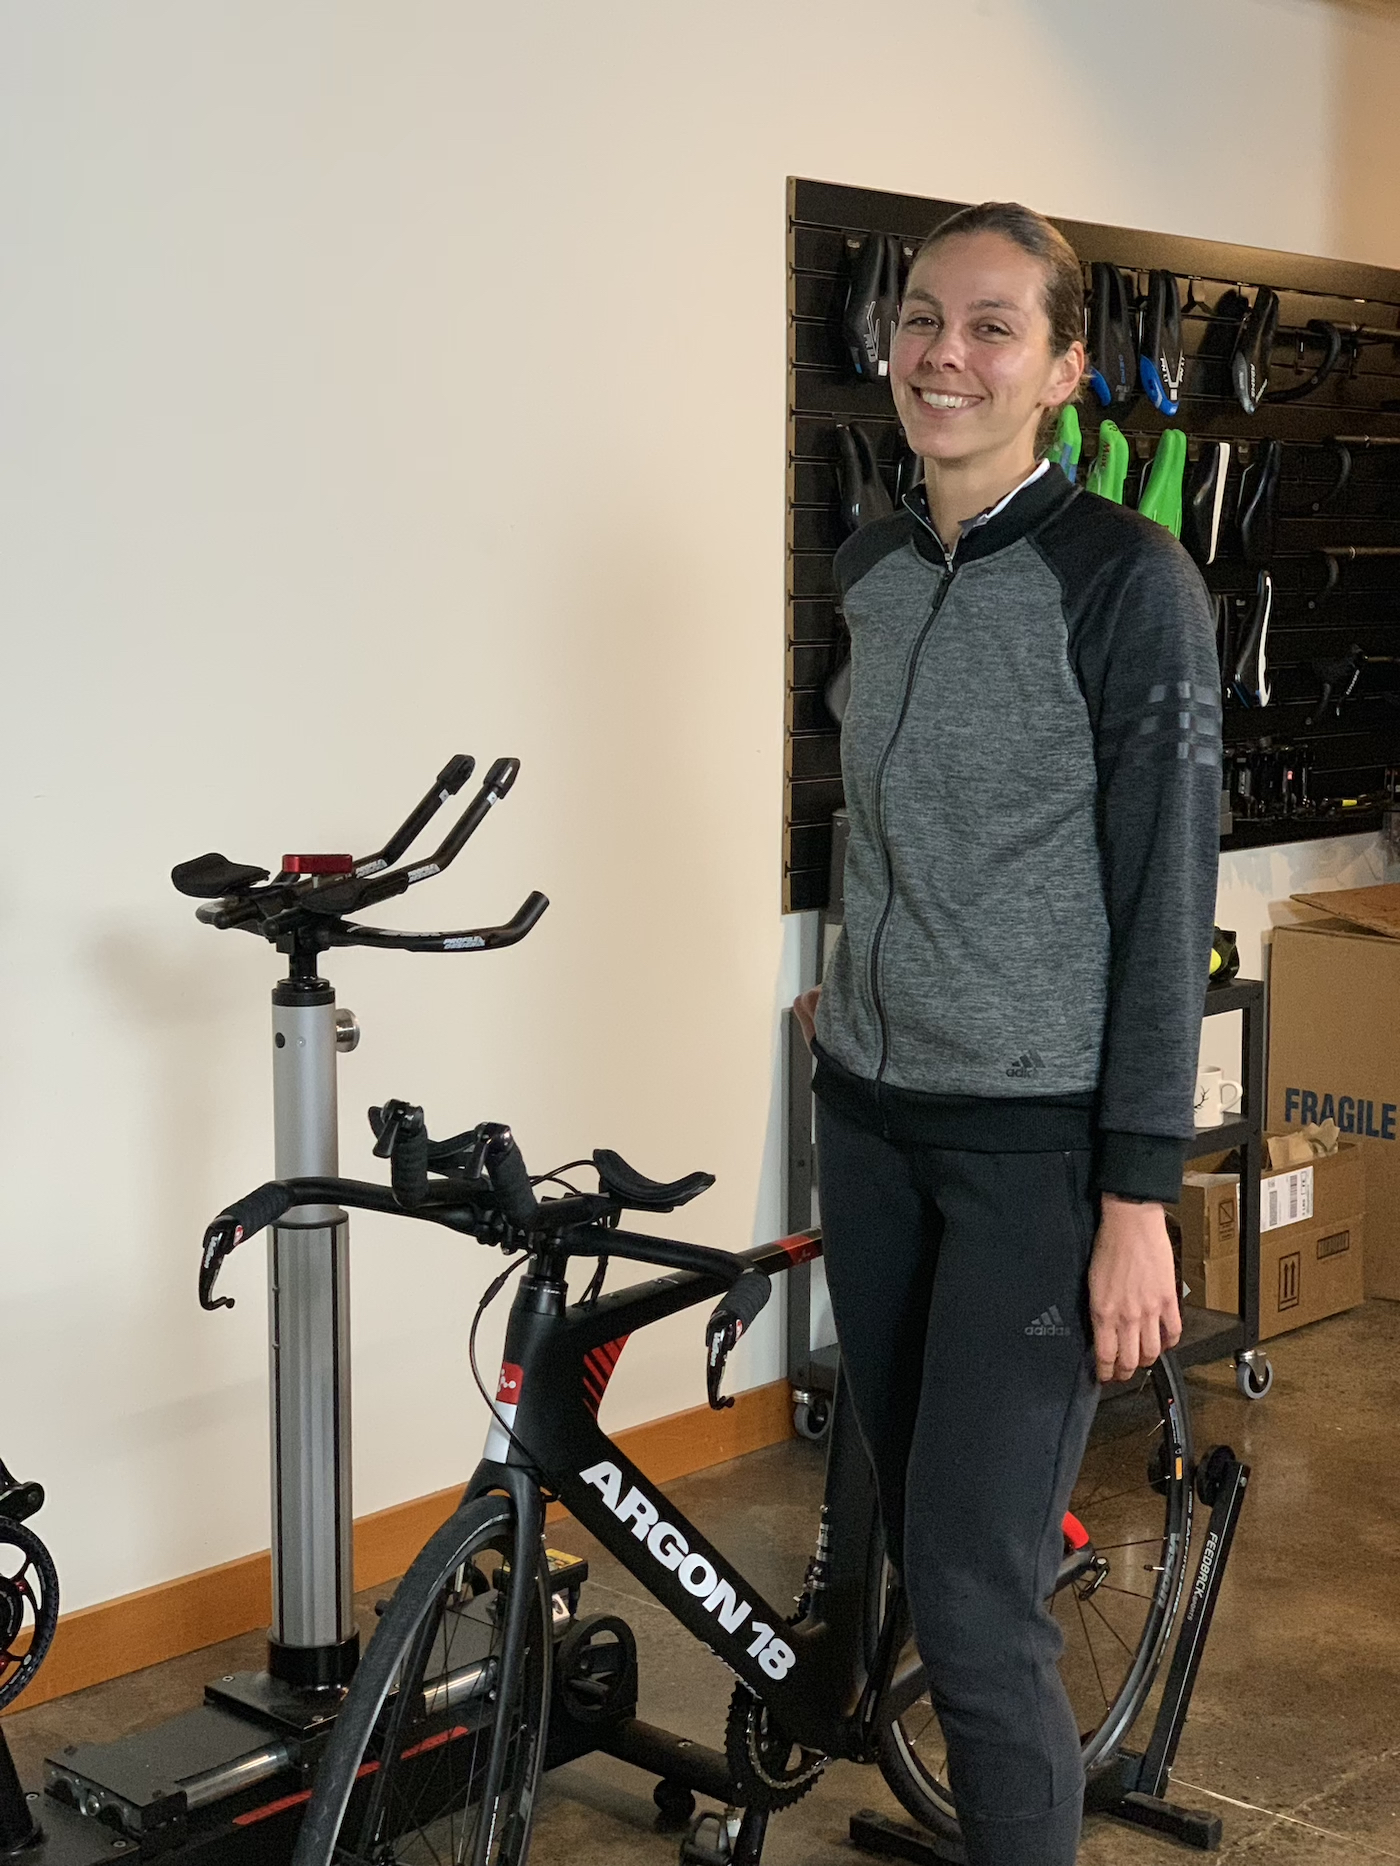 Our happy customer with her Argon 18 E-117